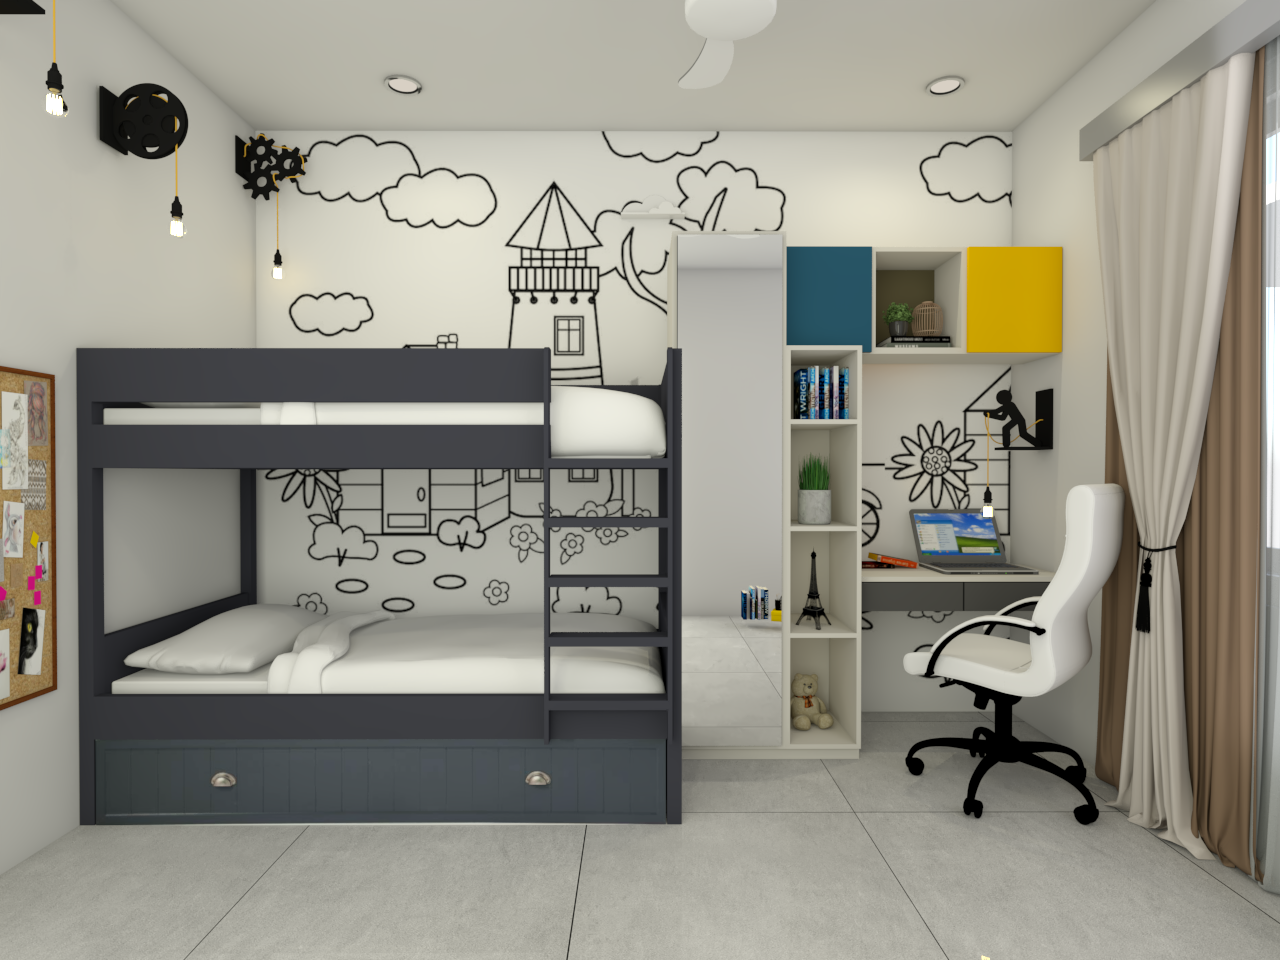 Wardrobe and Study Table for Kids' Bedroom - Mr. Puneeth